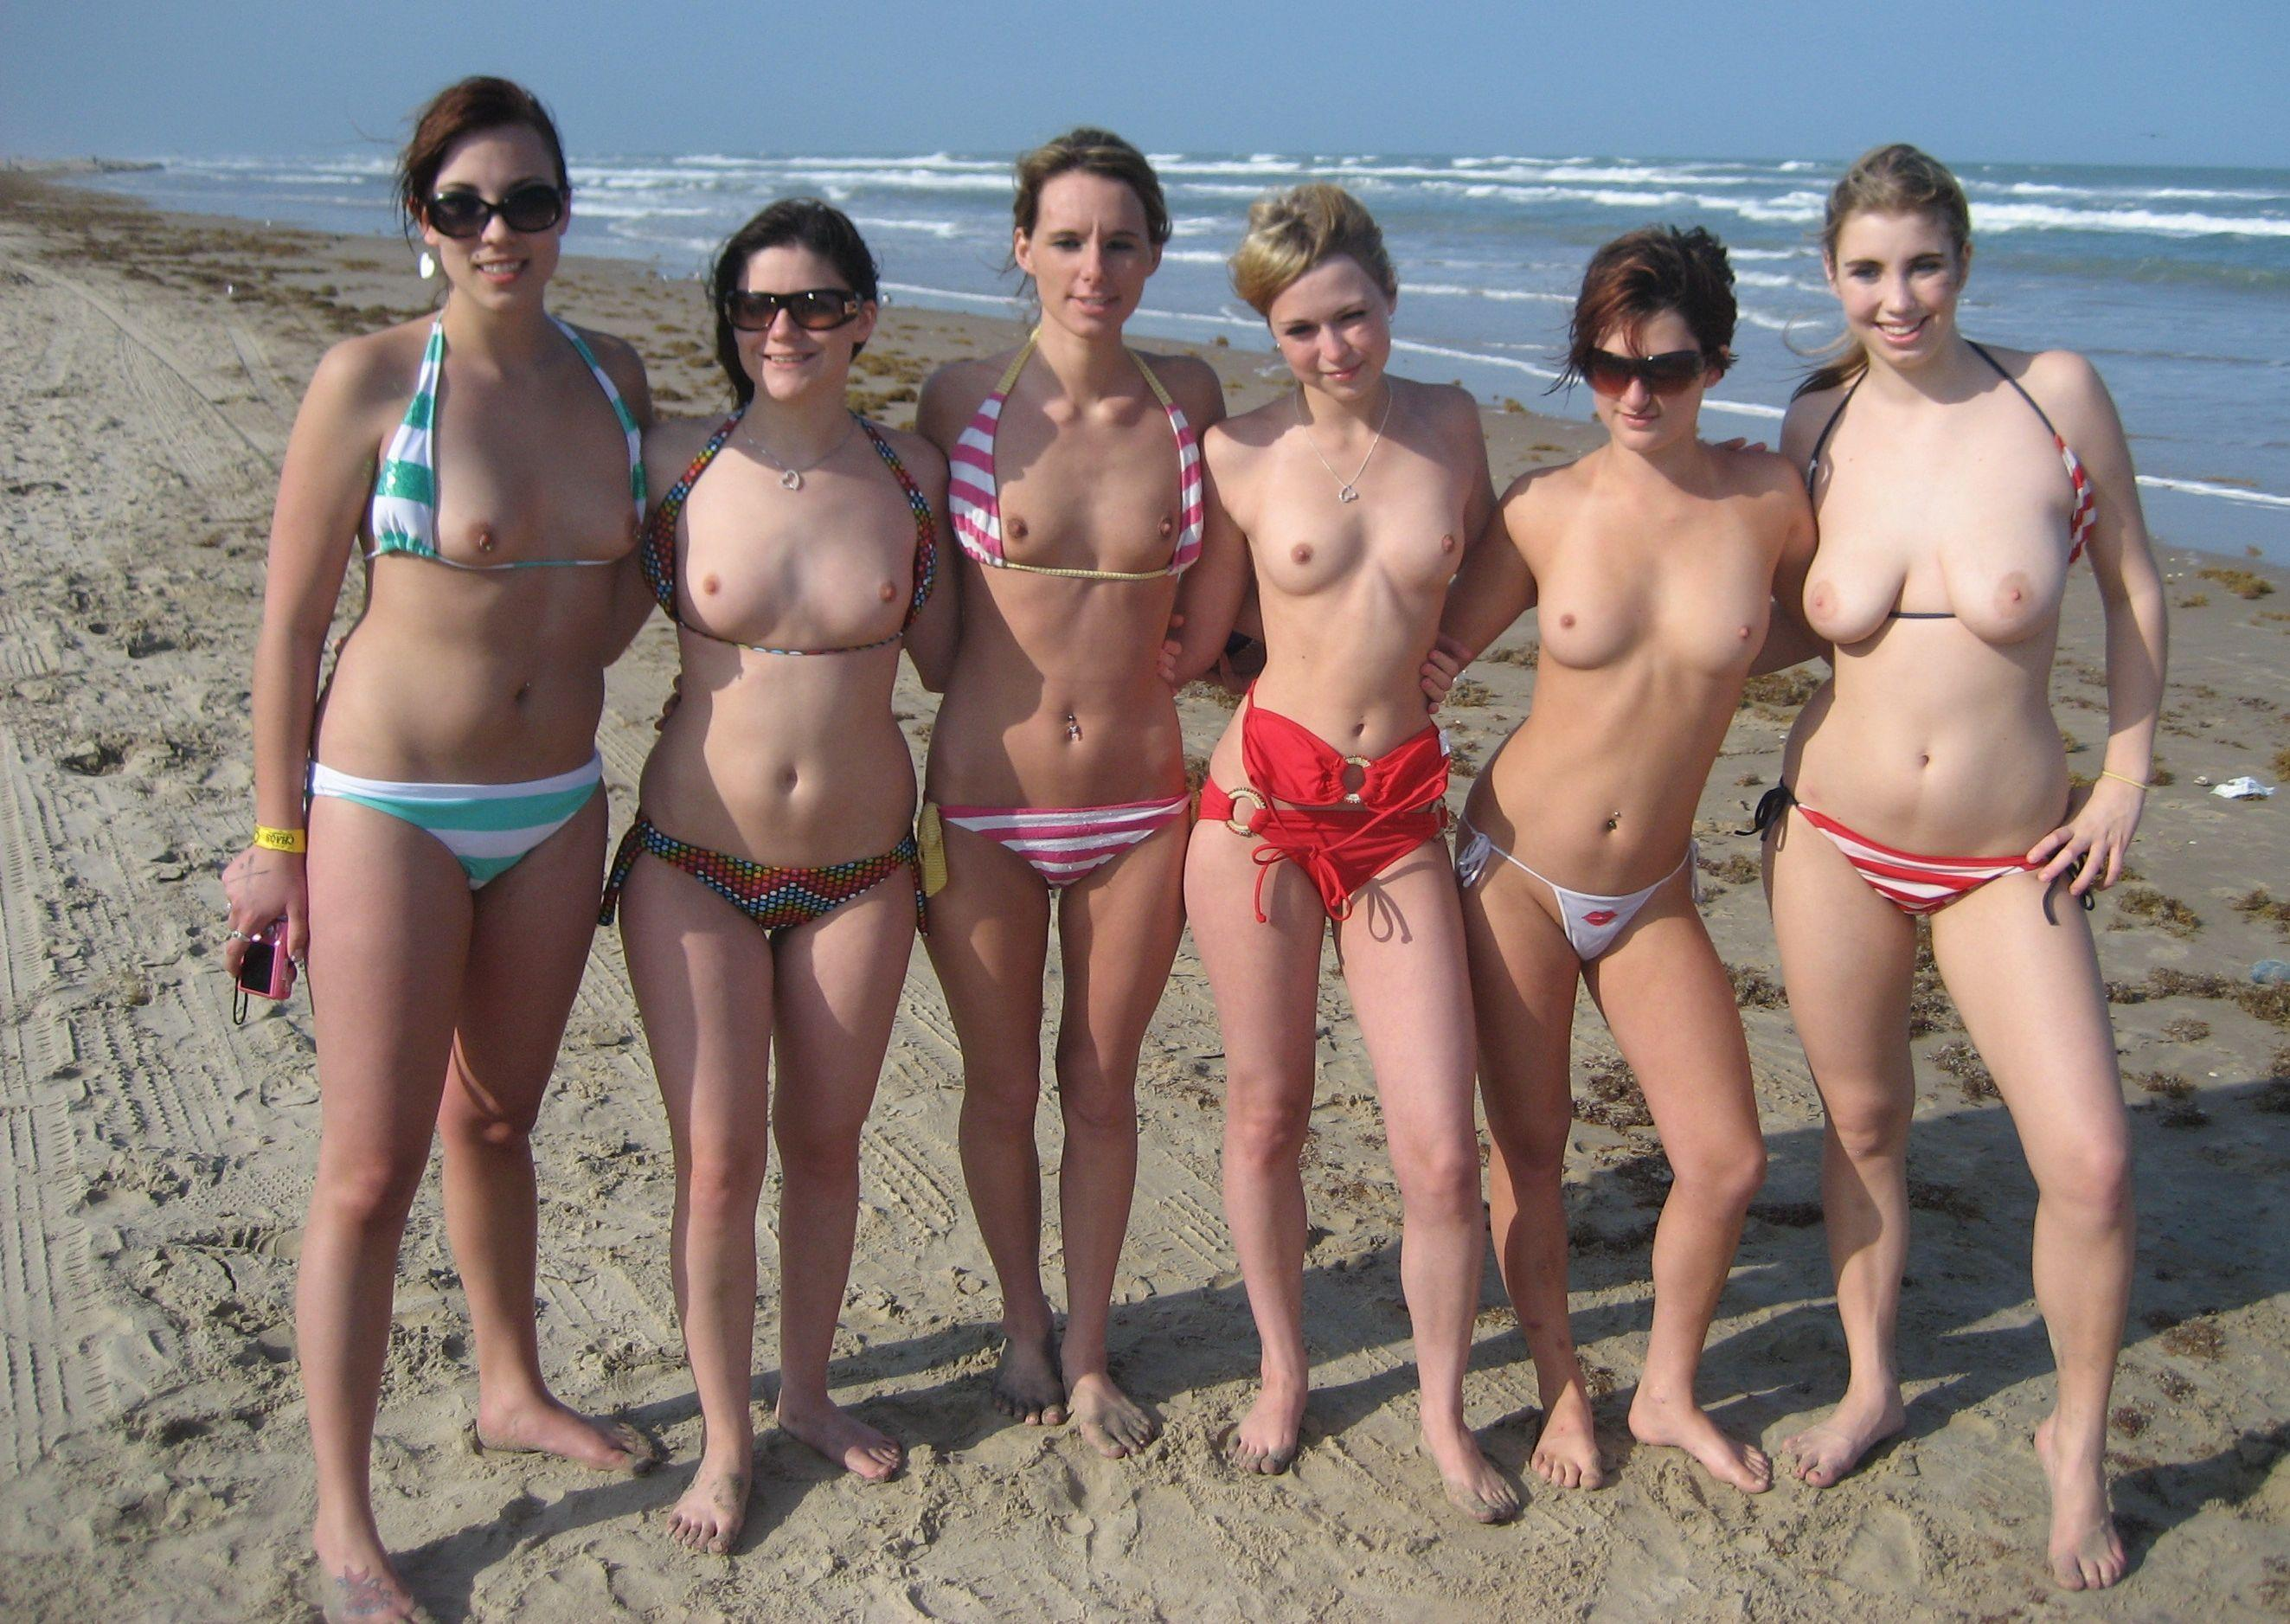 On Hot Beach Teens#5